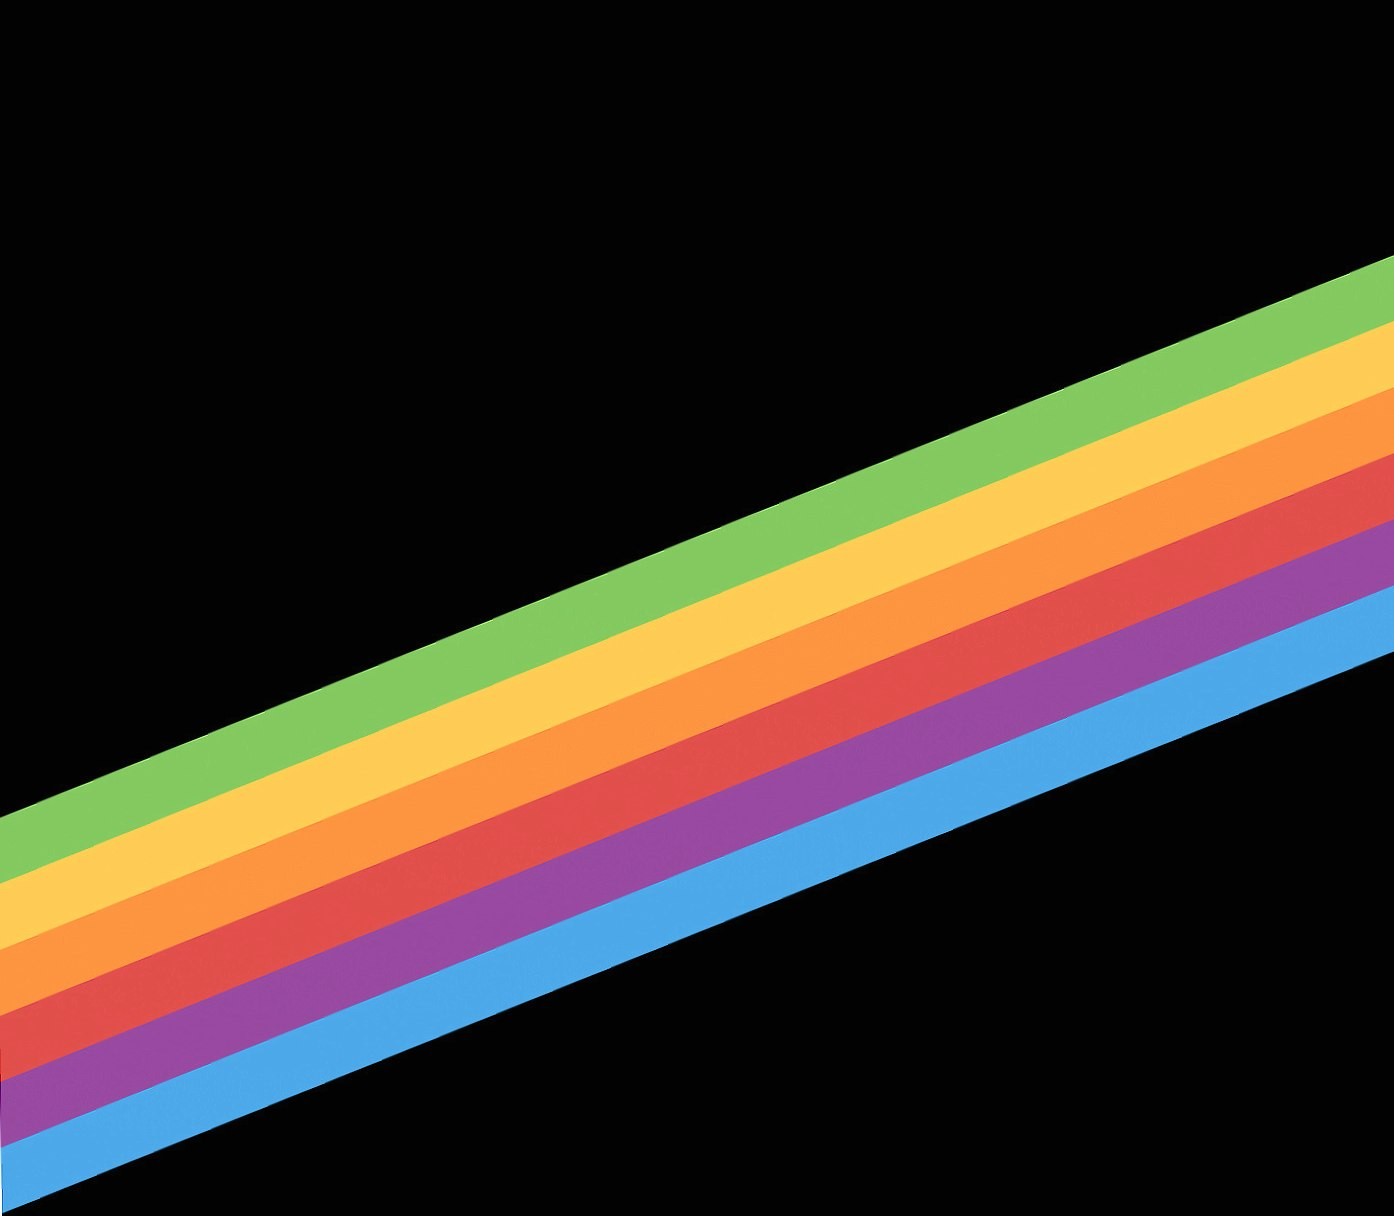 rainbow minimal wallpapers HD quality